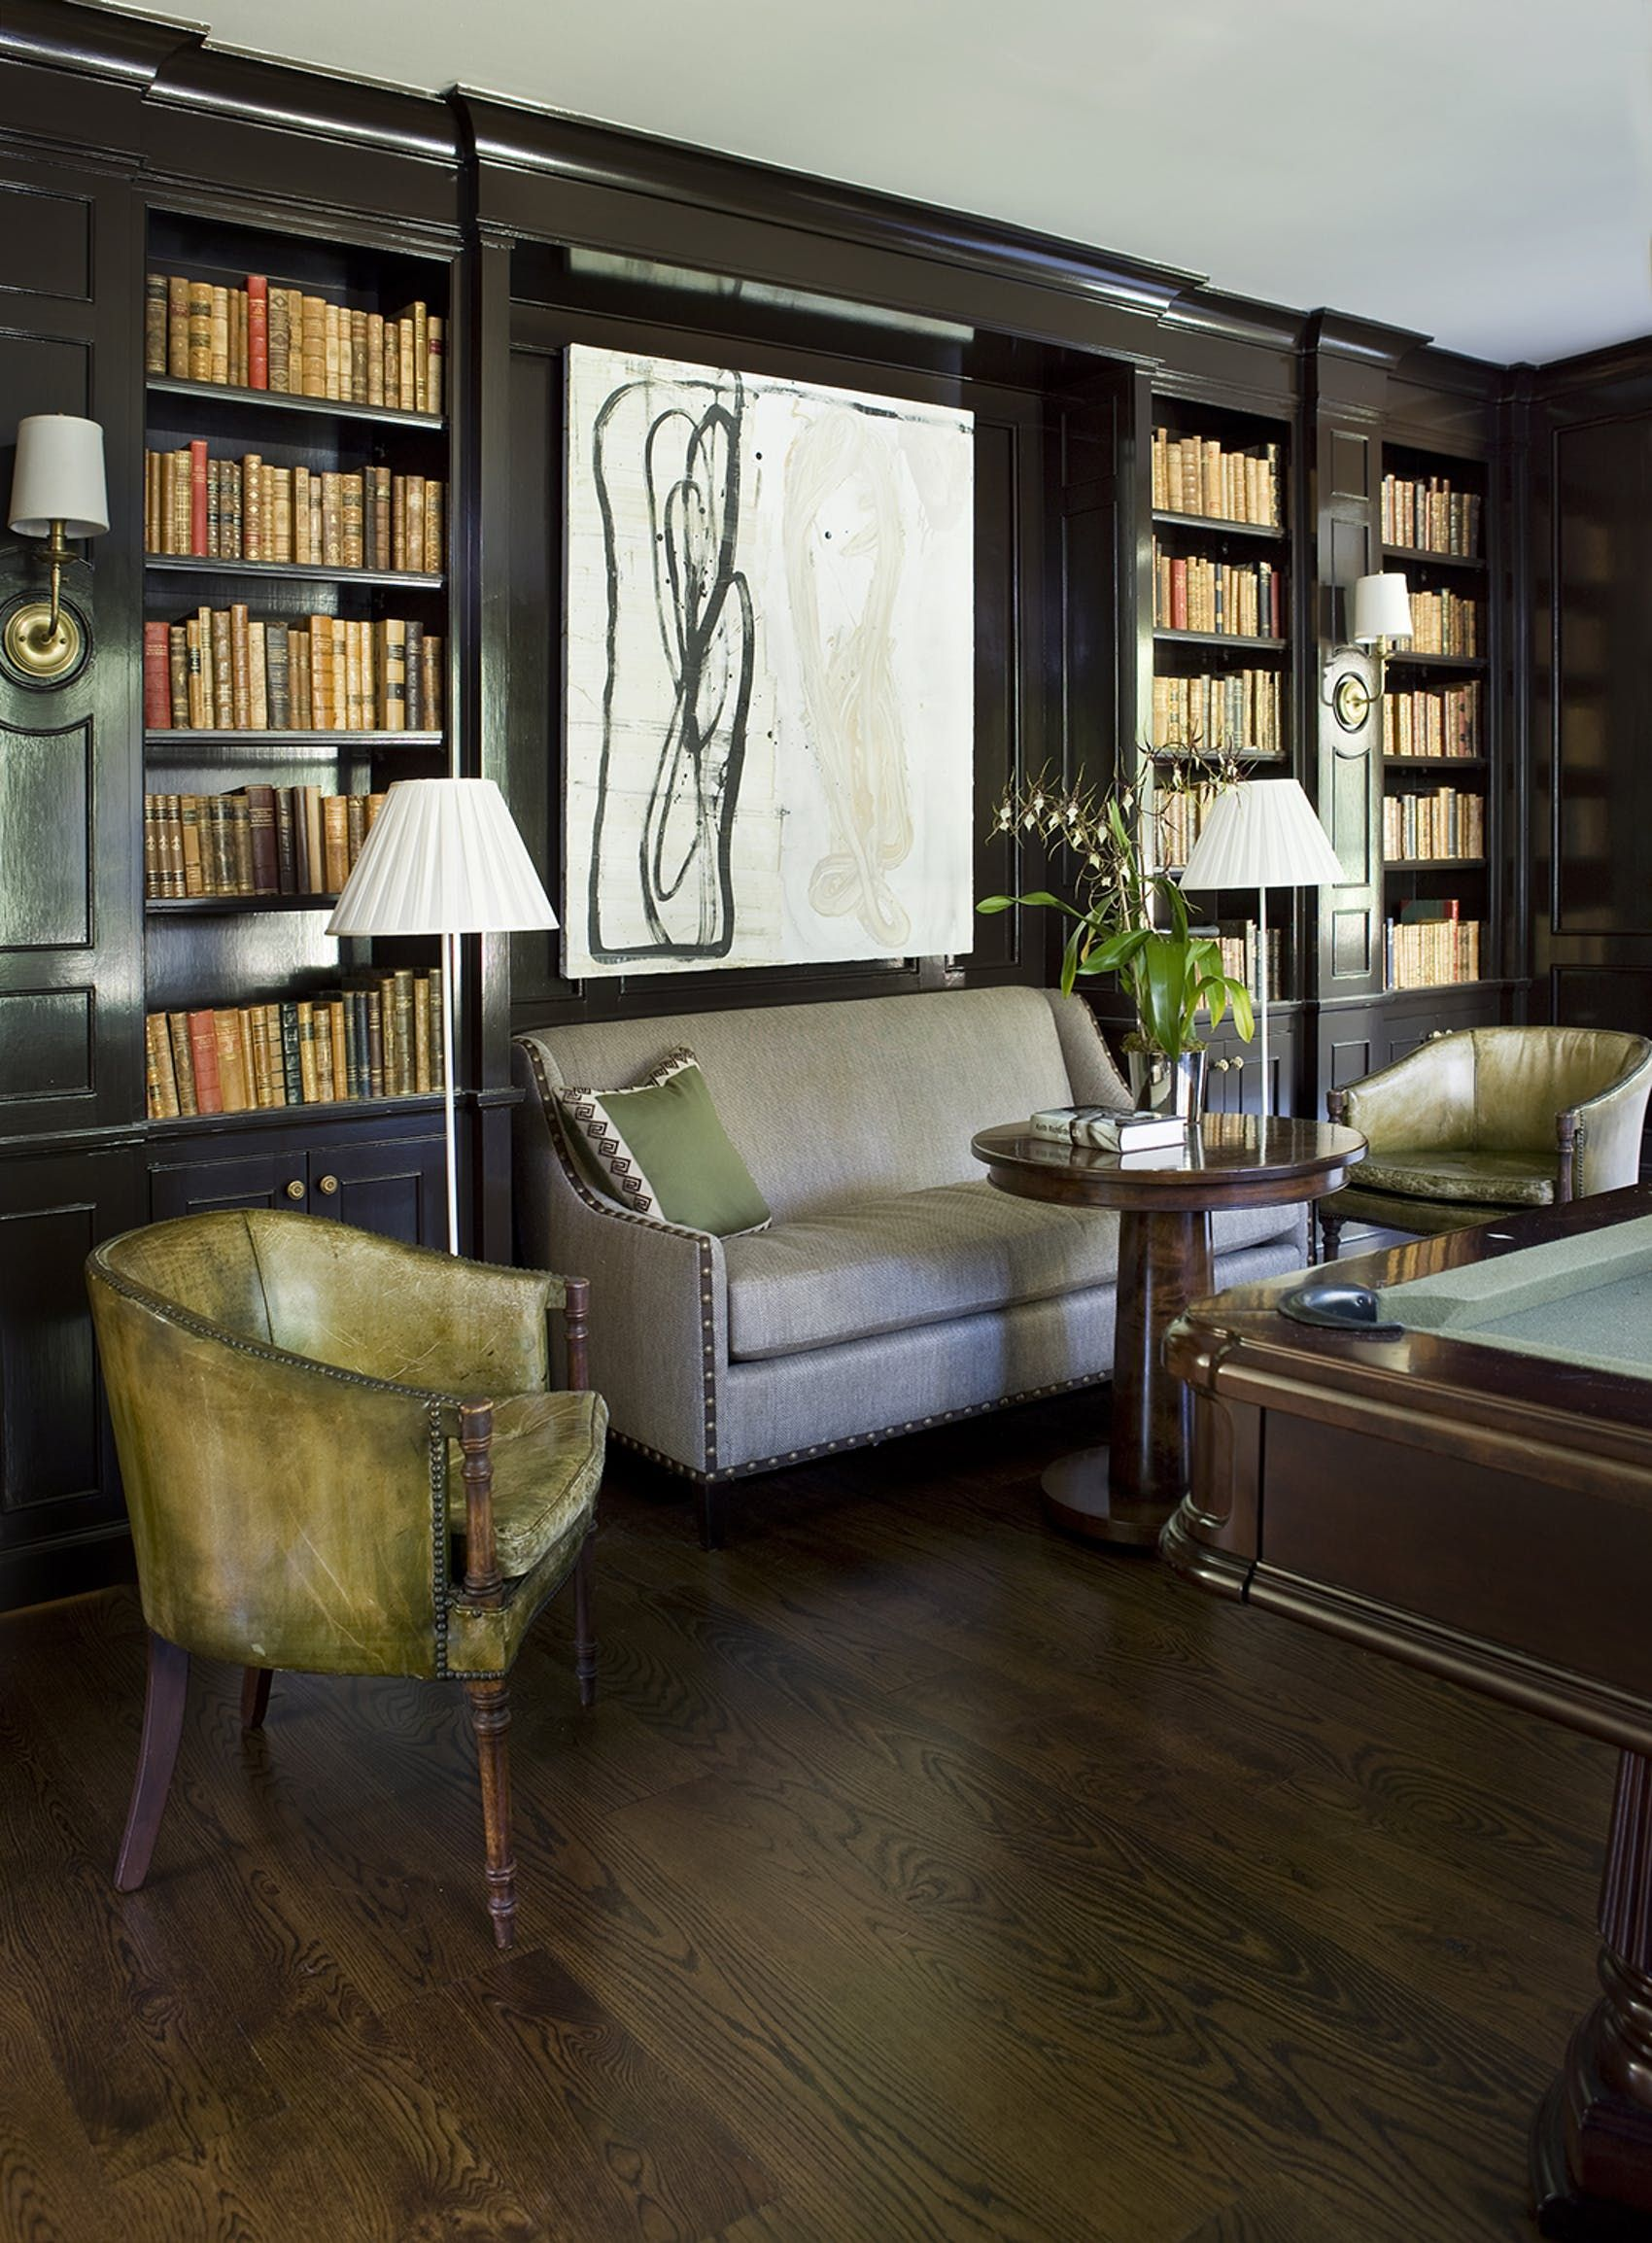 Home Interior Design Game Online: Pin By Coleen Frey On Interiors In 2020